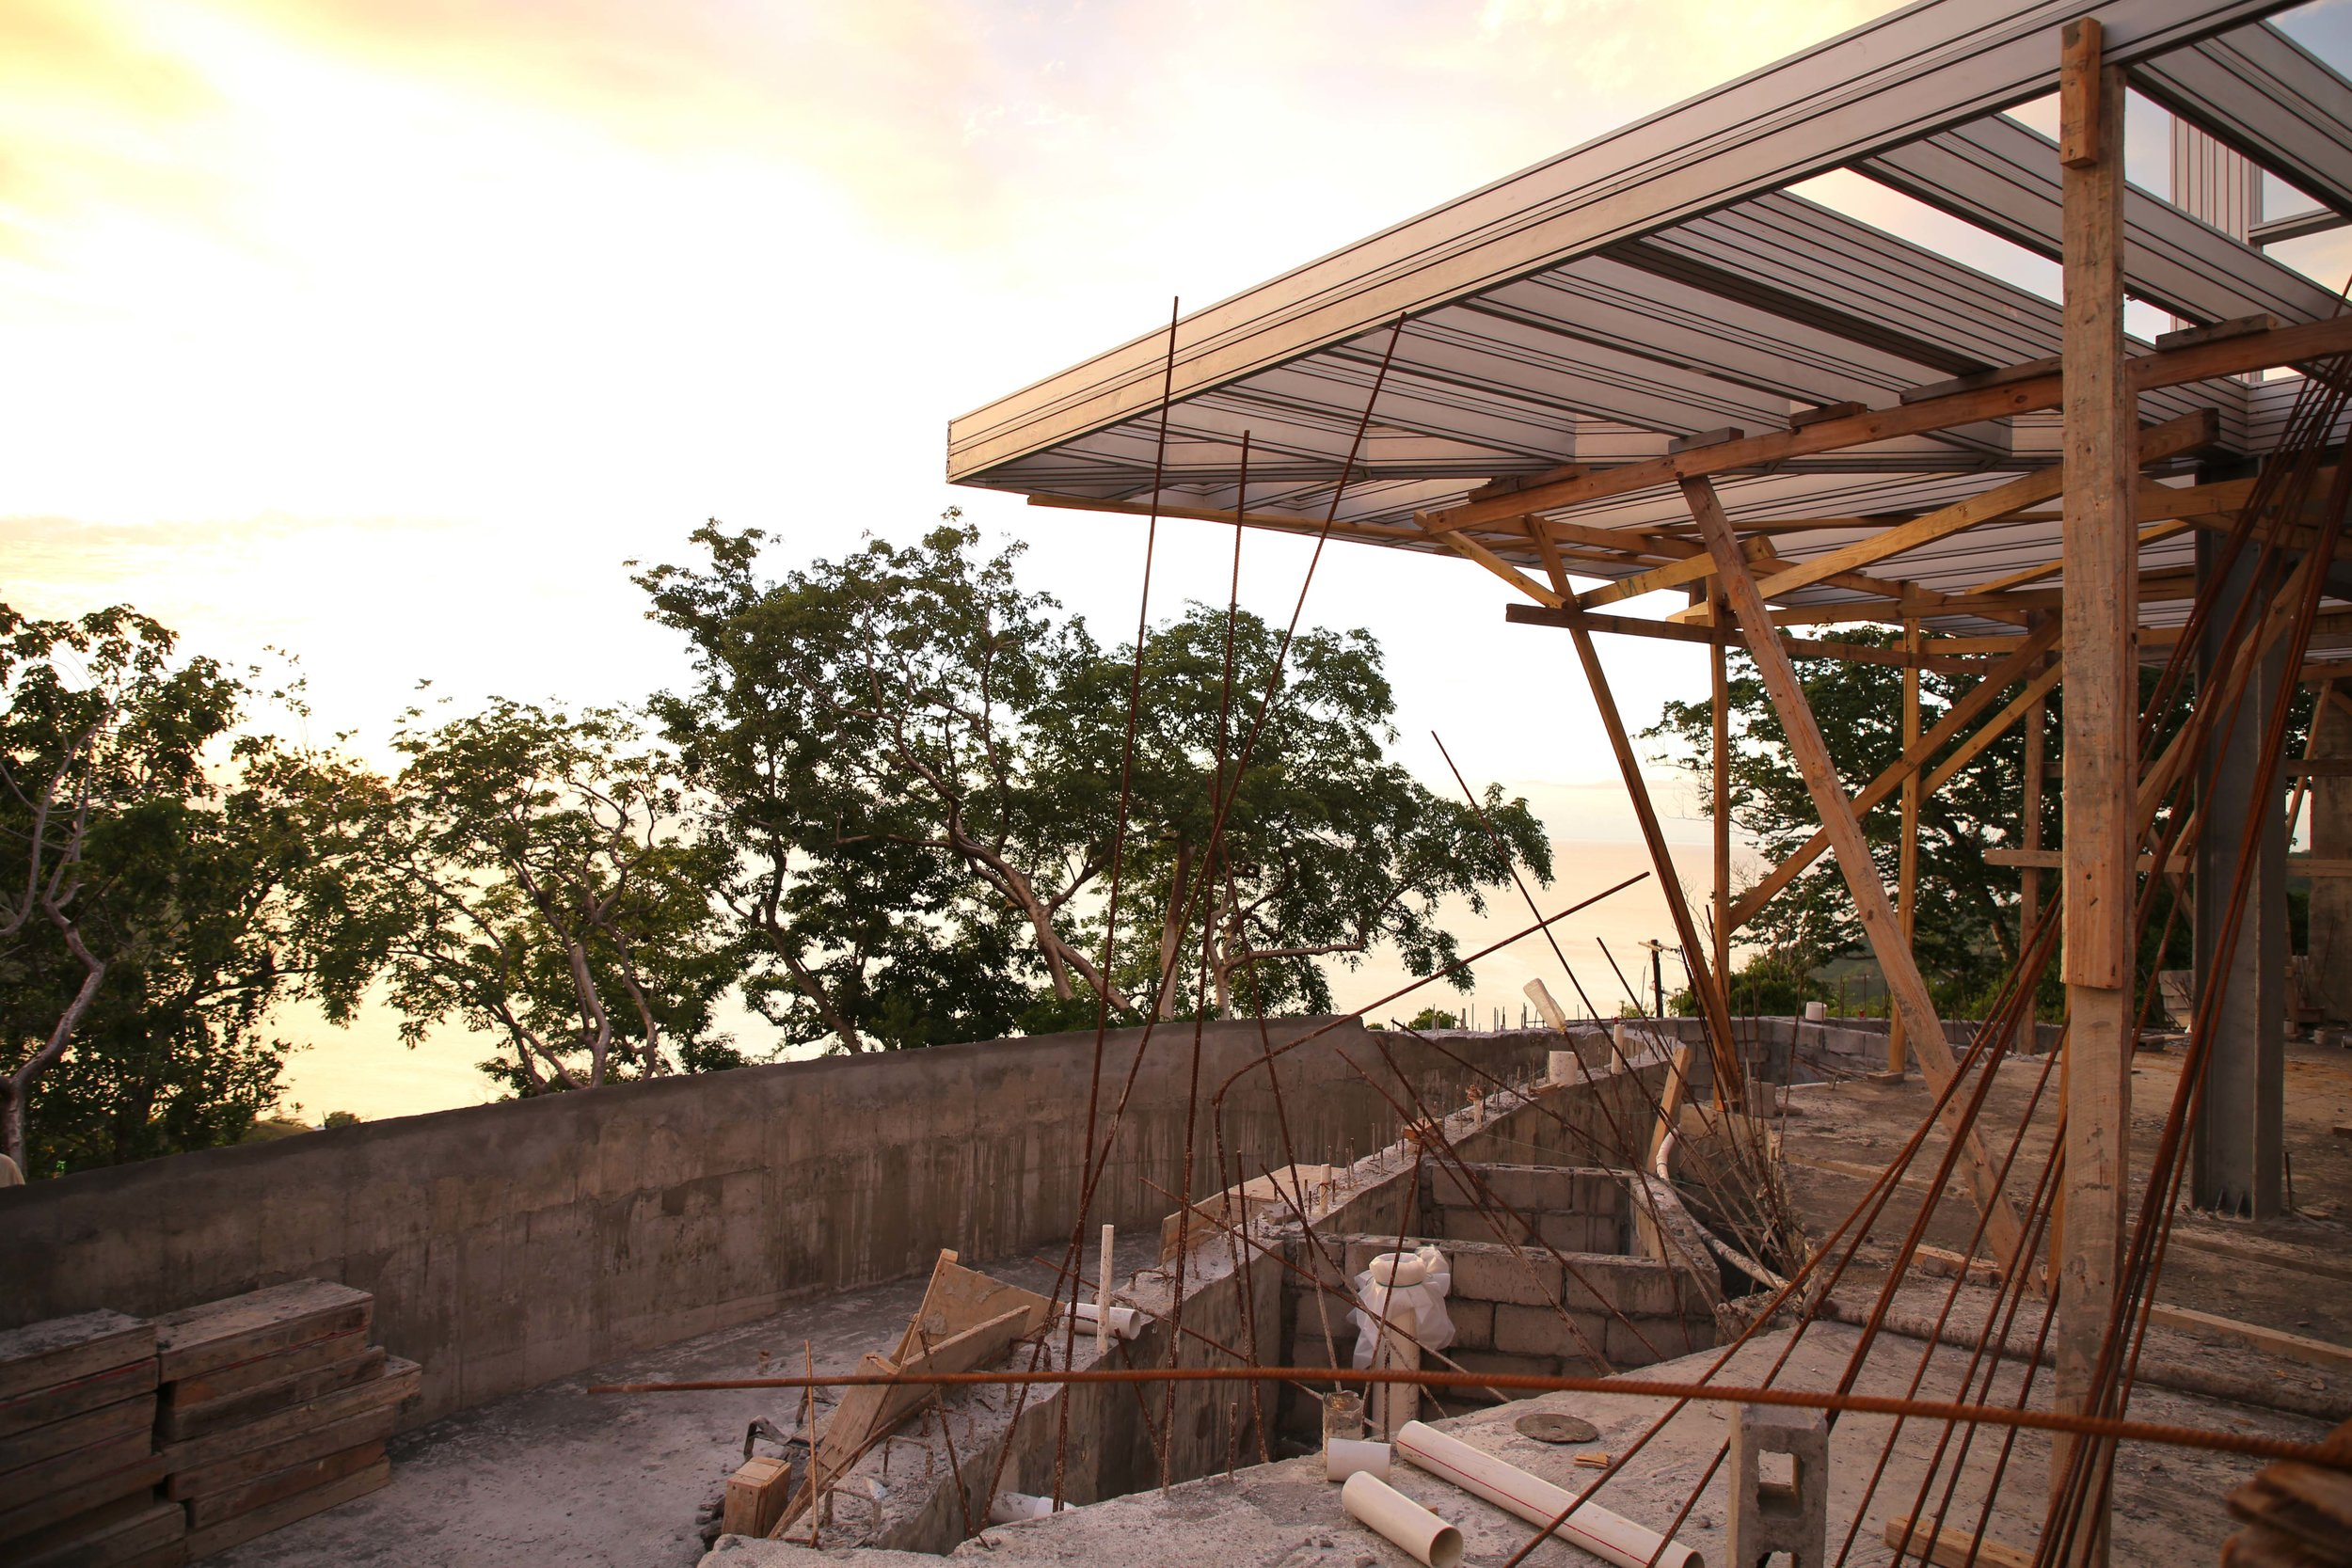 S.E.A.-Studio-Environmental-Architecture-David-Hertz-FAIA-Sail-House-Cloud9-Bequia-Saint-Vincent-Grenadines-Caribbean-Island-sustainable-regenerative-restorative-green-design-hospitality-tropical-resort-hotel-biomimetic-tensile-structure-progress-9.jpg